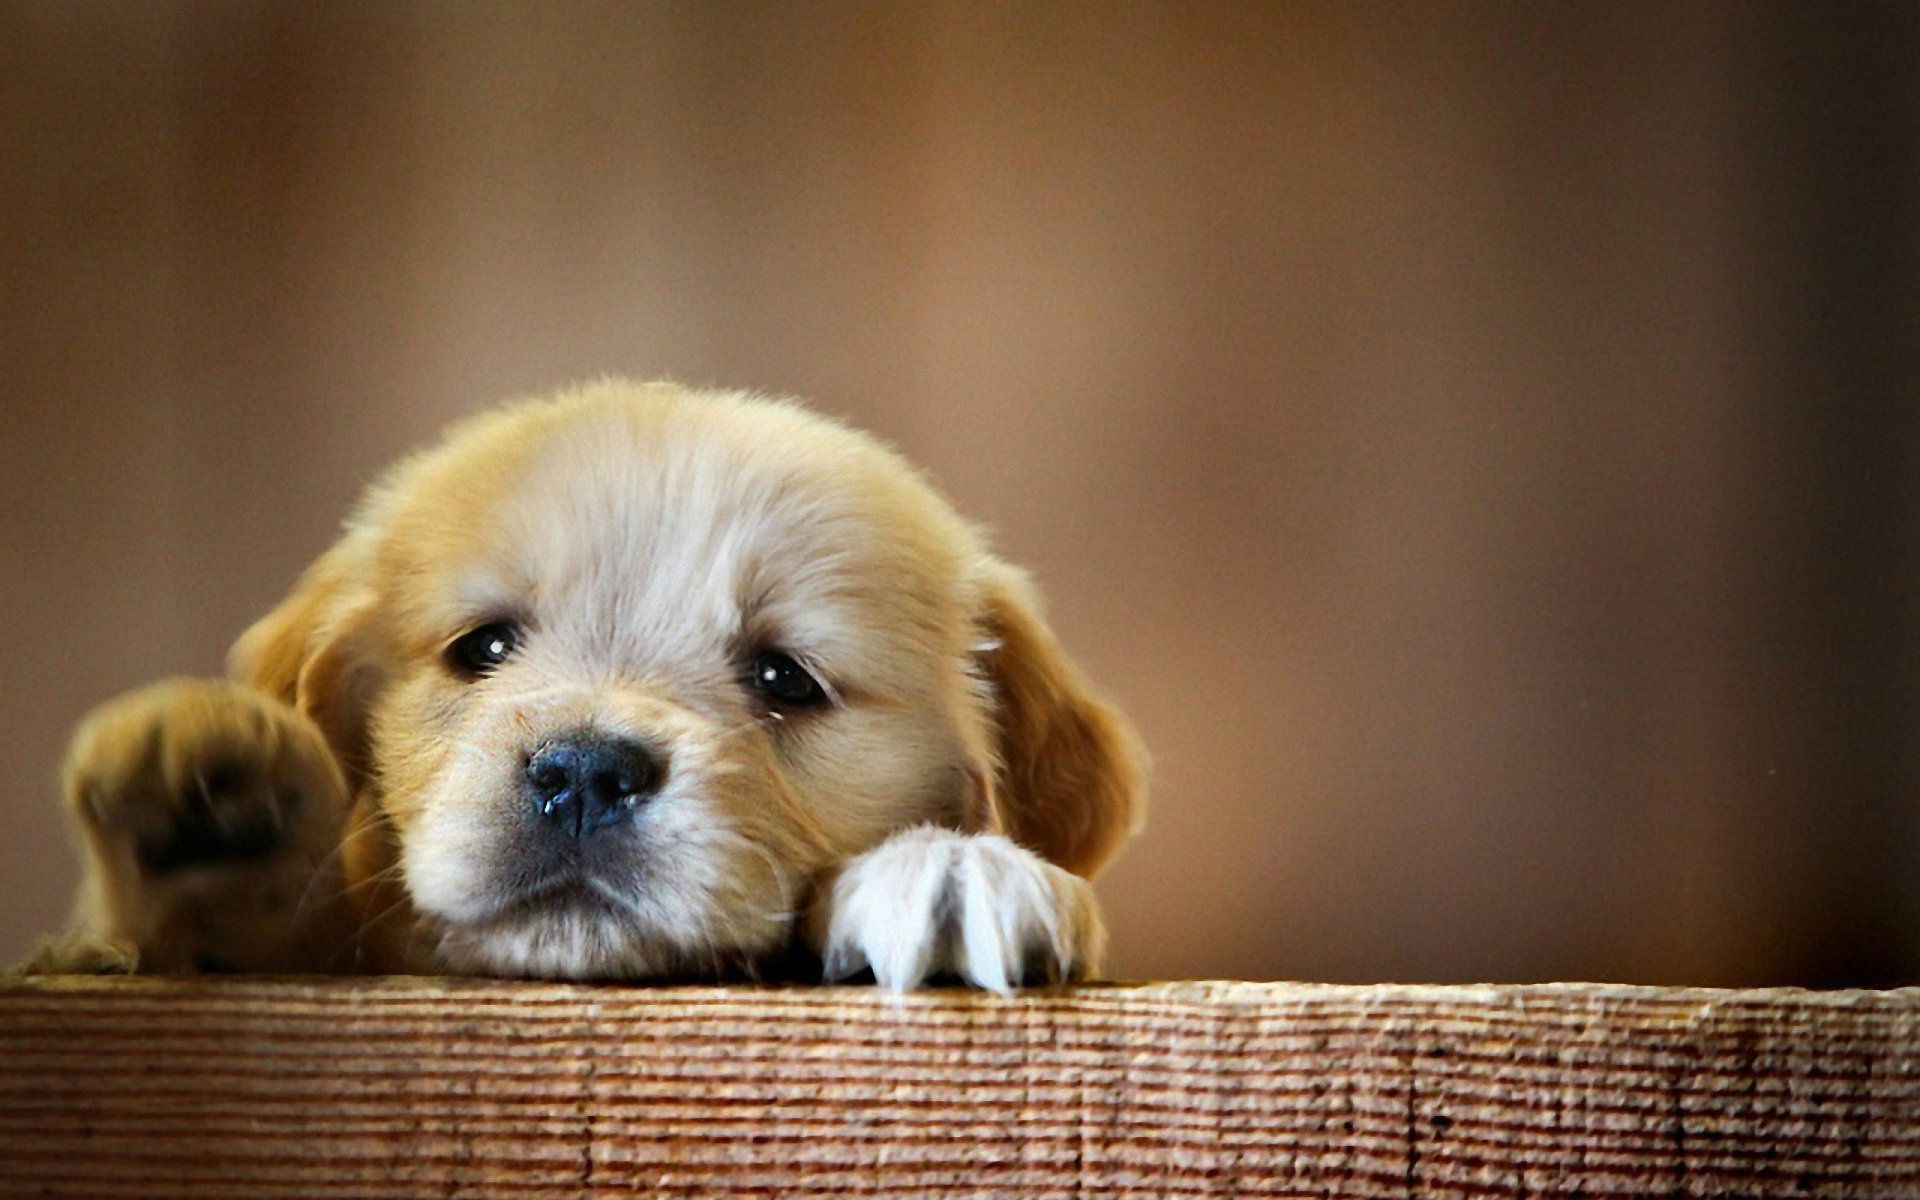 Baby Dog Wallpaper For Windows Idi Cute Baby Dogs Dog Wallpaper Cute Puppy Wallpaper